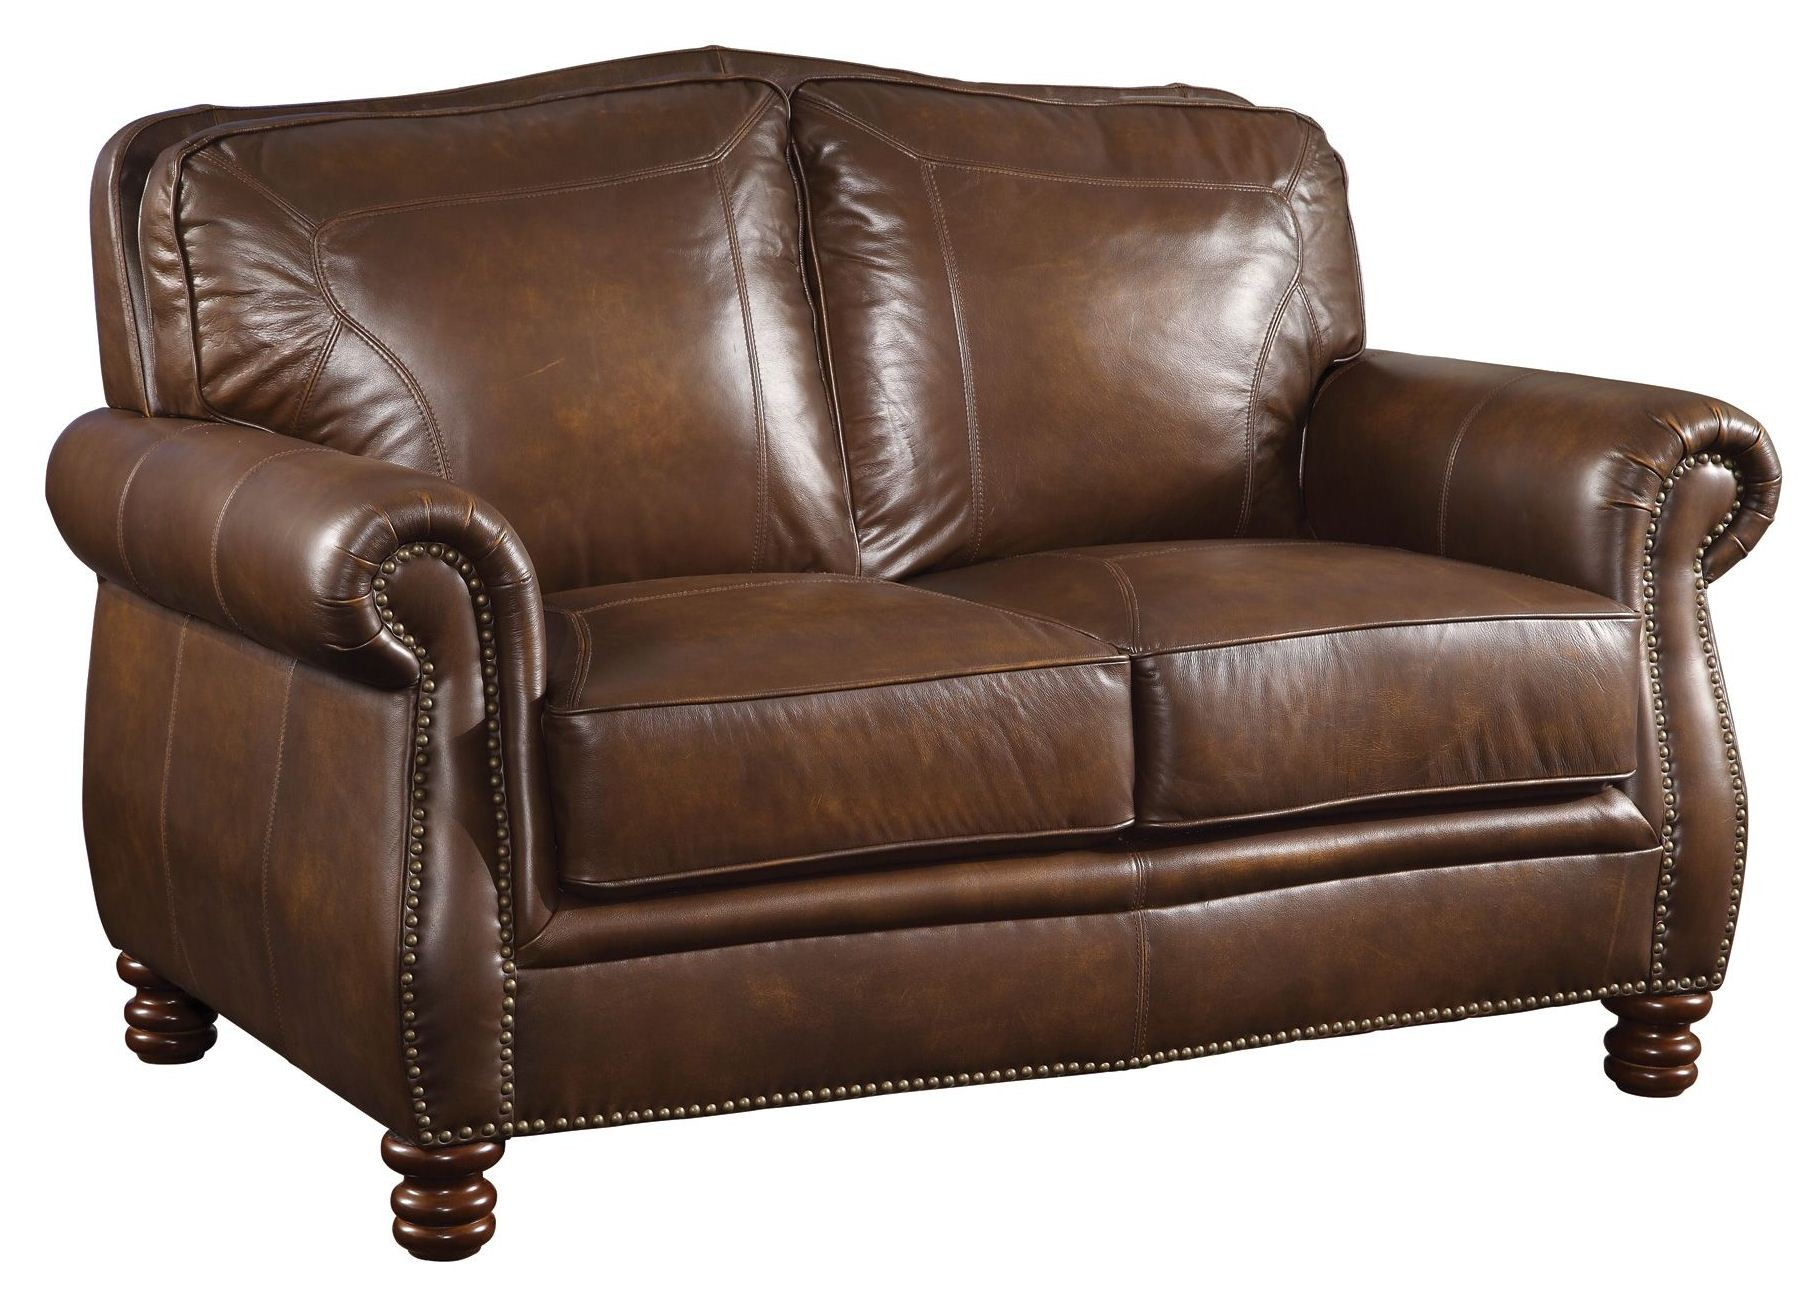 Montbrook Loveseat From Coaster 503982 Coleman Furniture